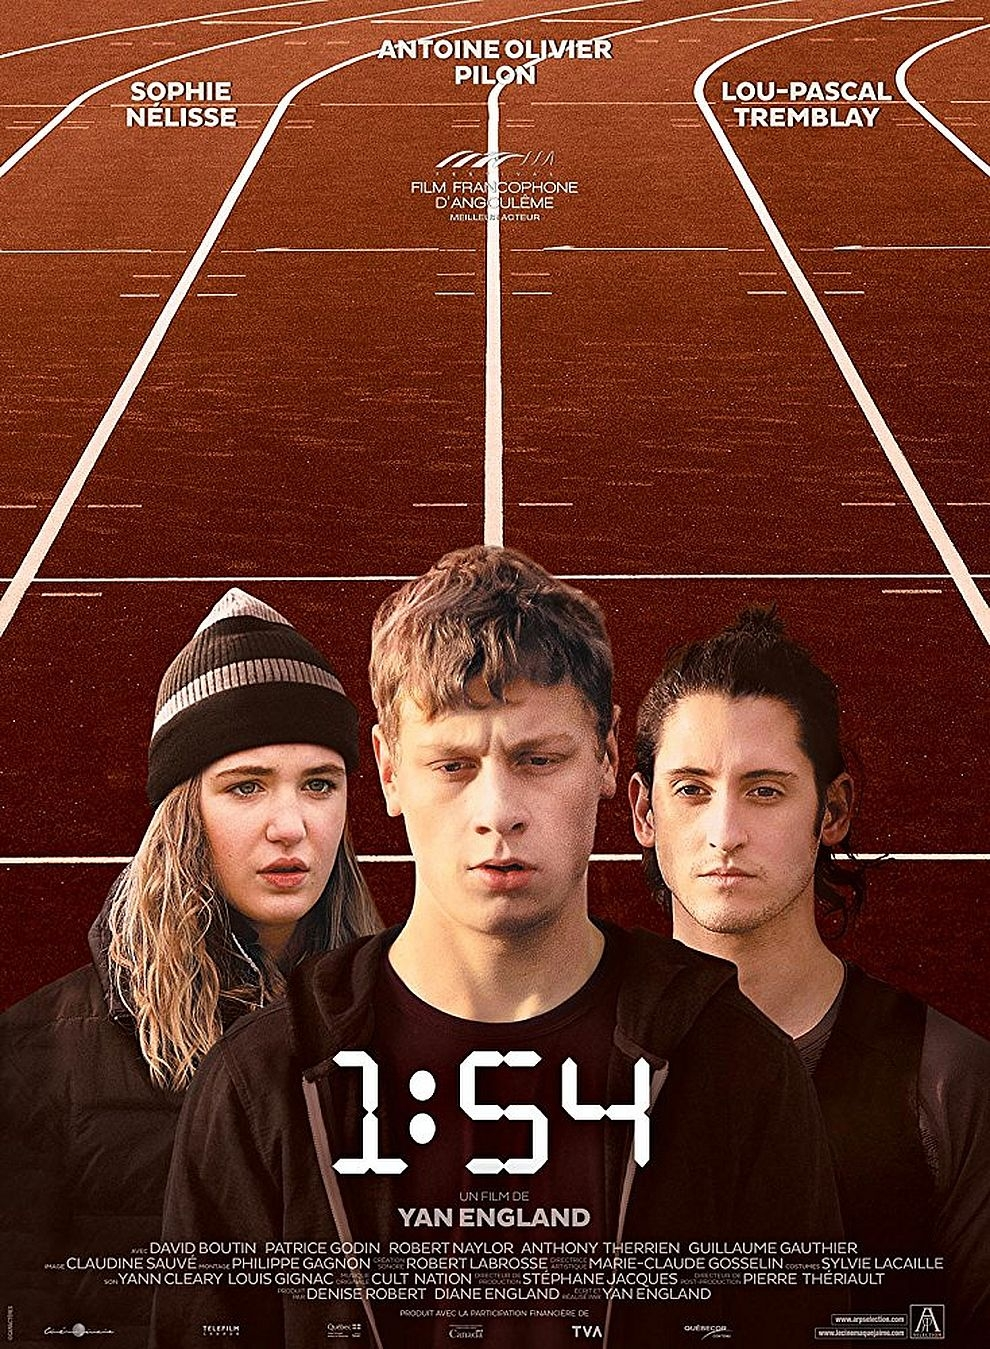 1:54 (Poster)